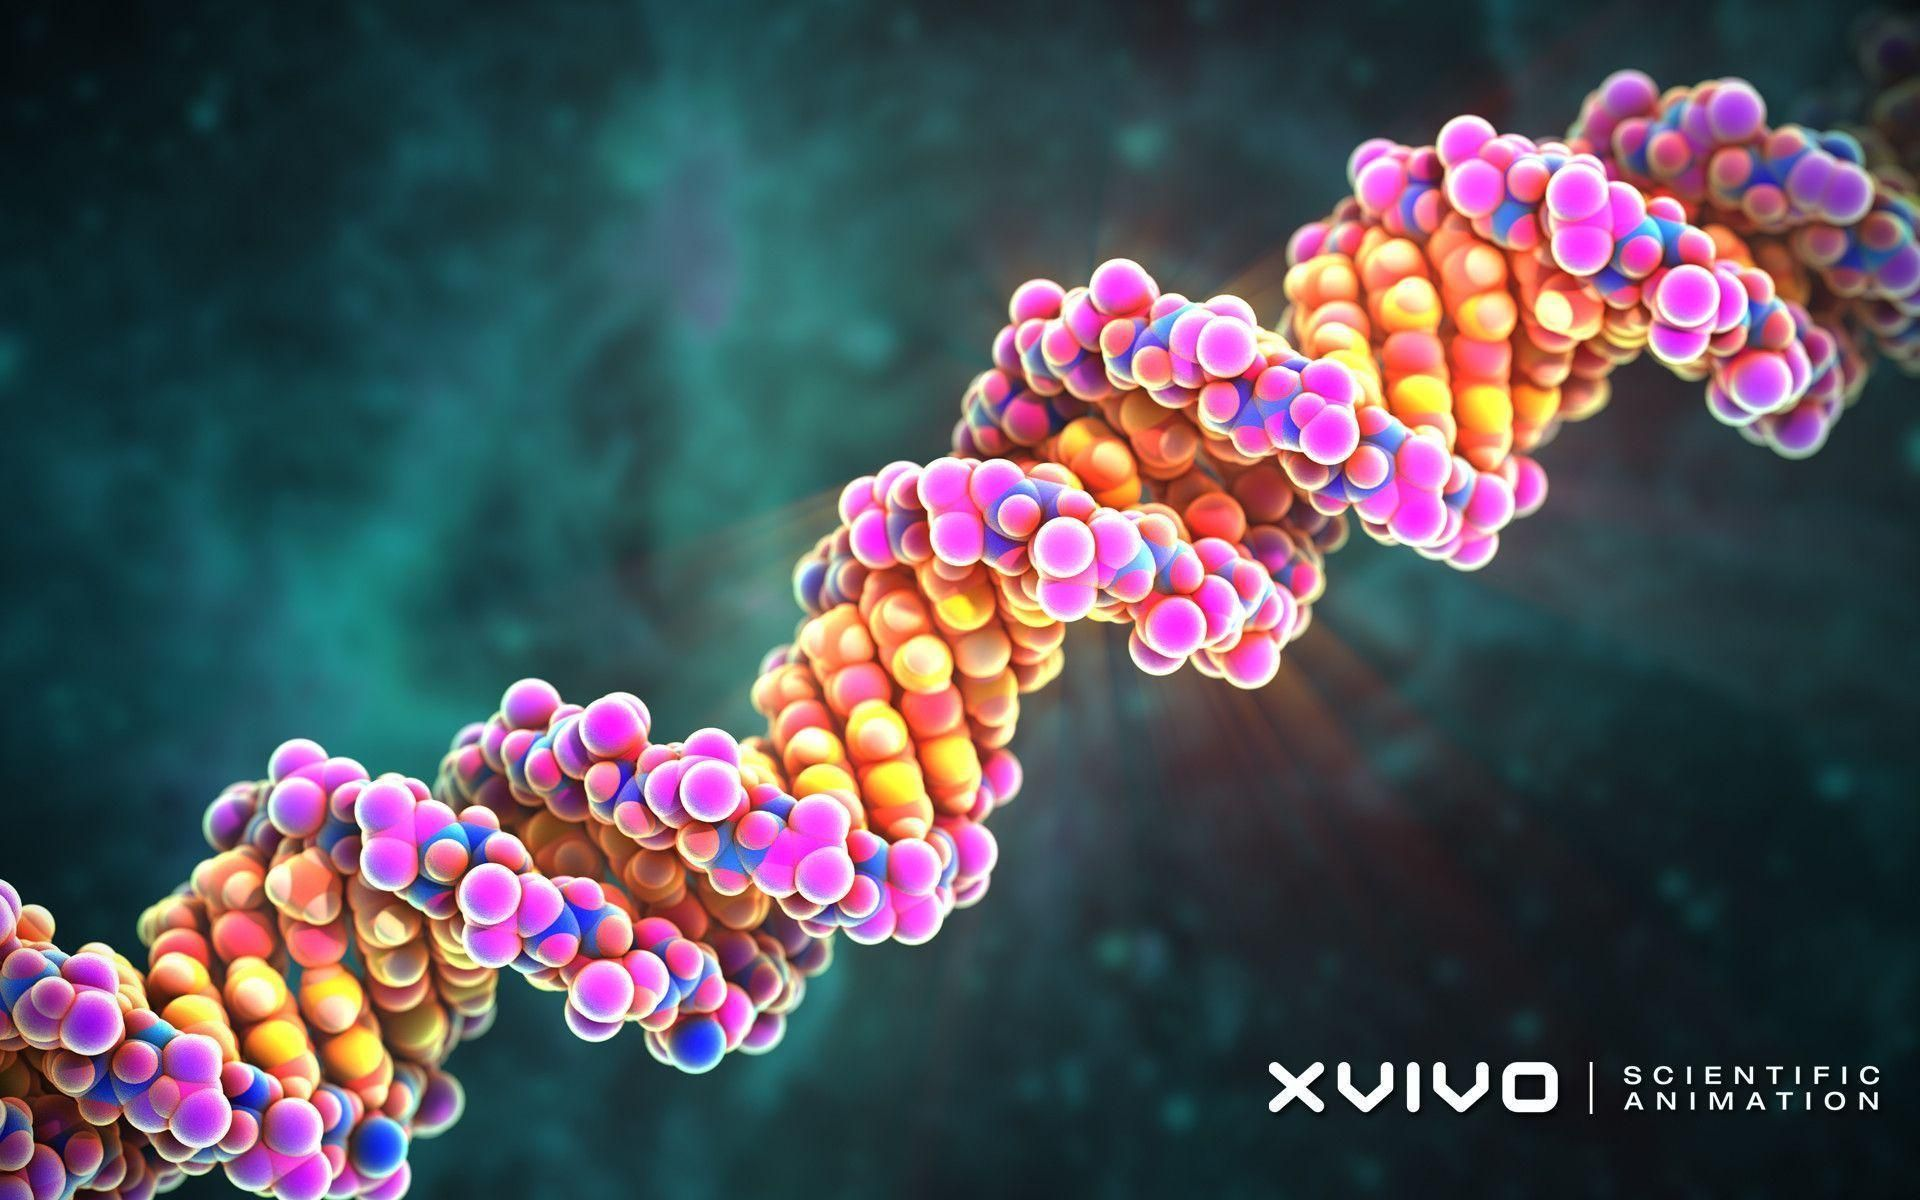 Download This Awesome Wallpaper Wallpaper Cave Cell Biology Biology Dna